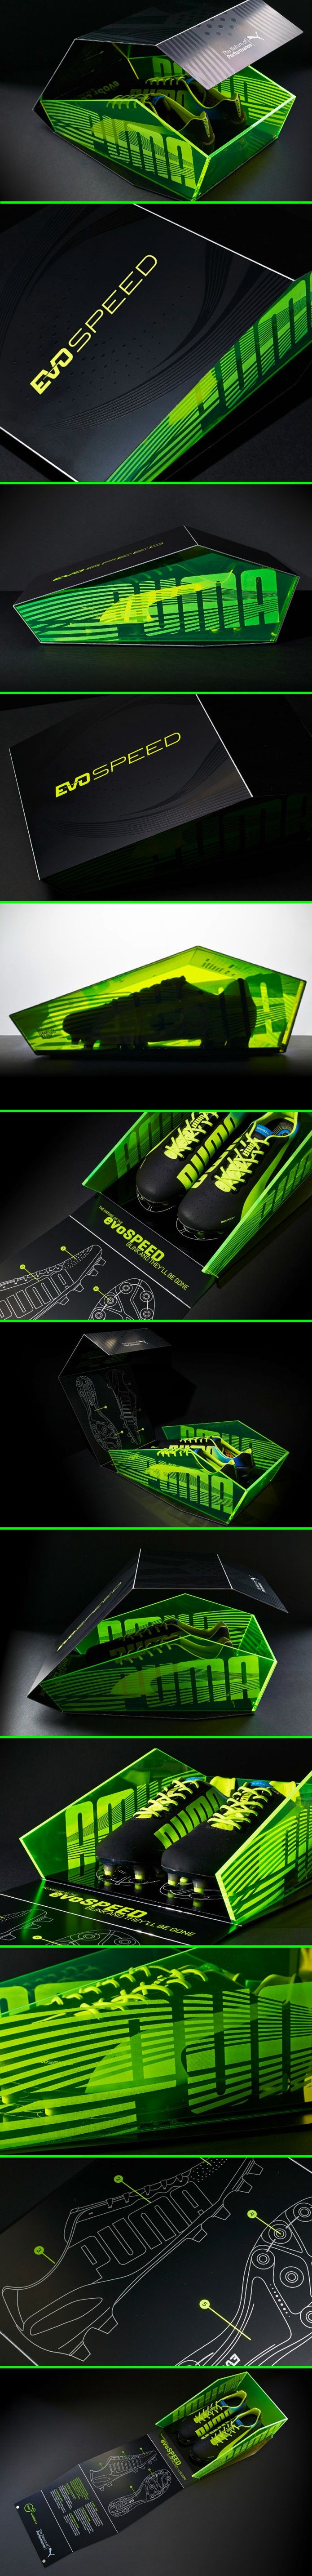 Puma EvoSpeed Limited Edition Packaging